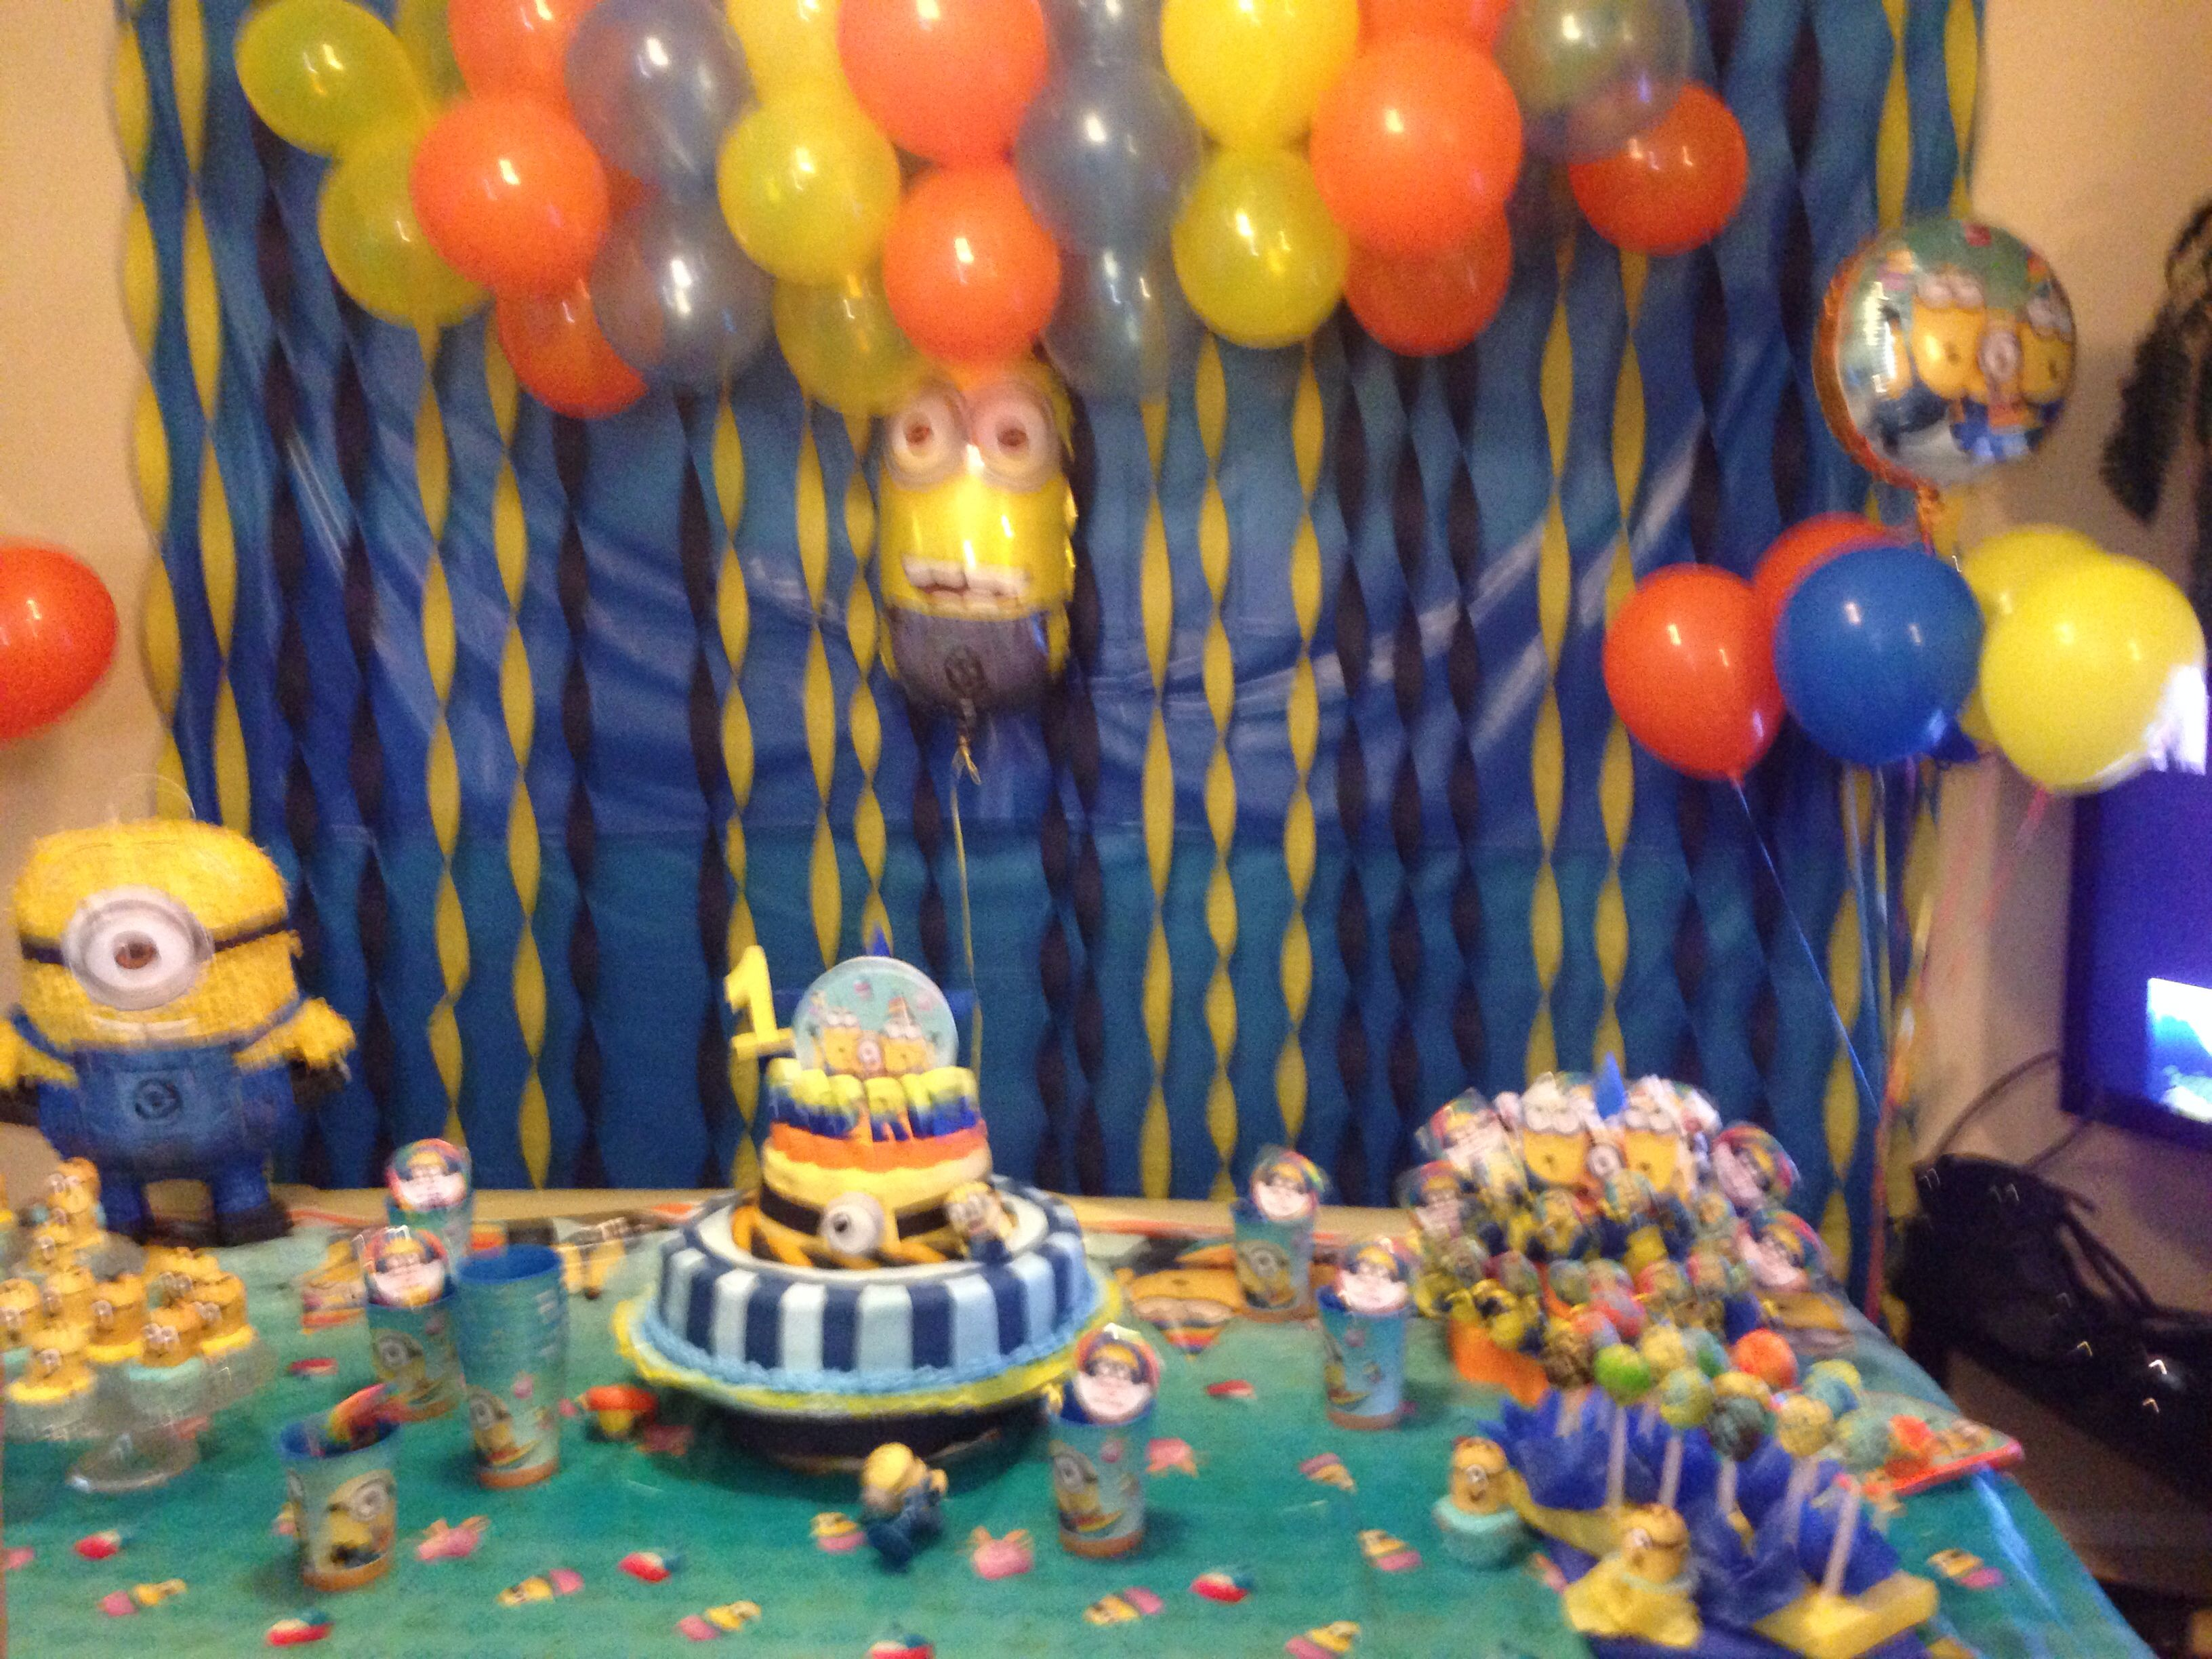 Decoration Stuff For Party Minions Party Decoration Chucky Pinterest Minion Party